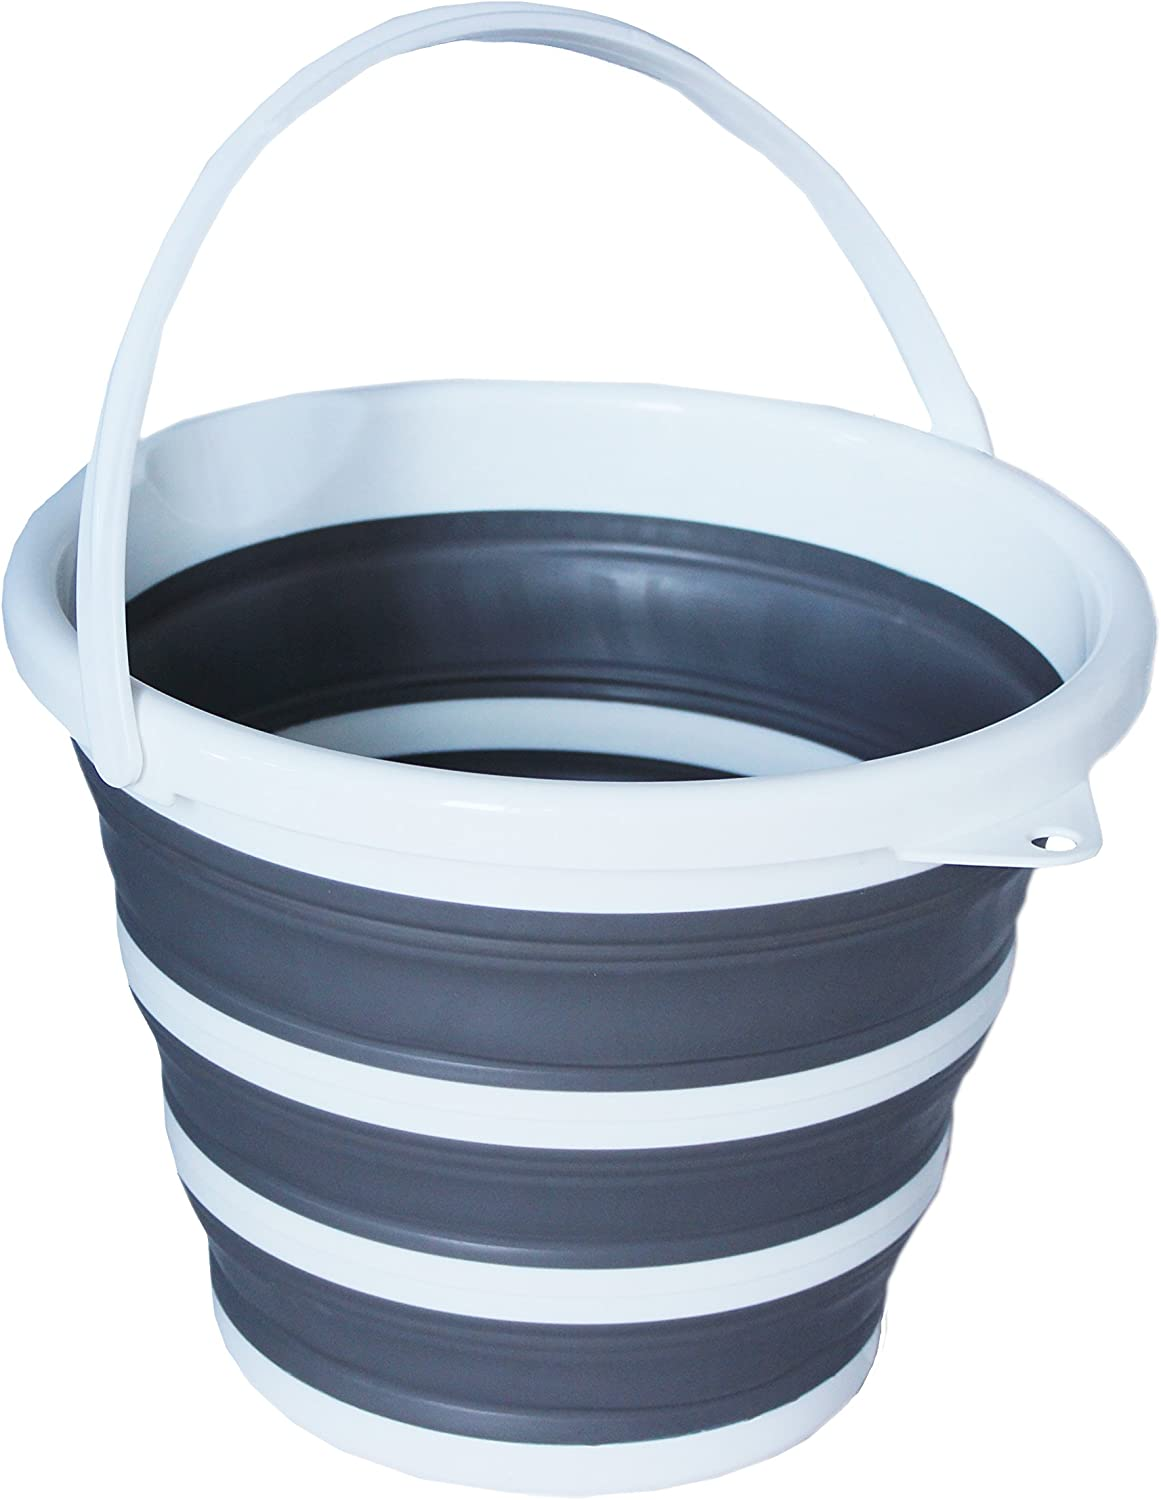 Saibor Collapsible Plastic Oakland Mall Bucket with Max 89% OFF Wash Car Co Handle